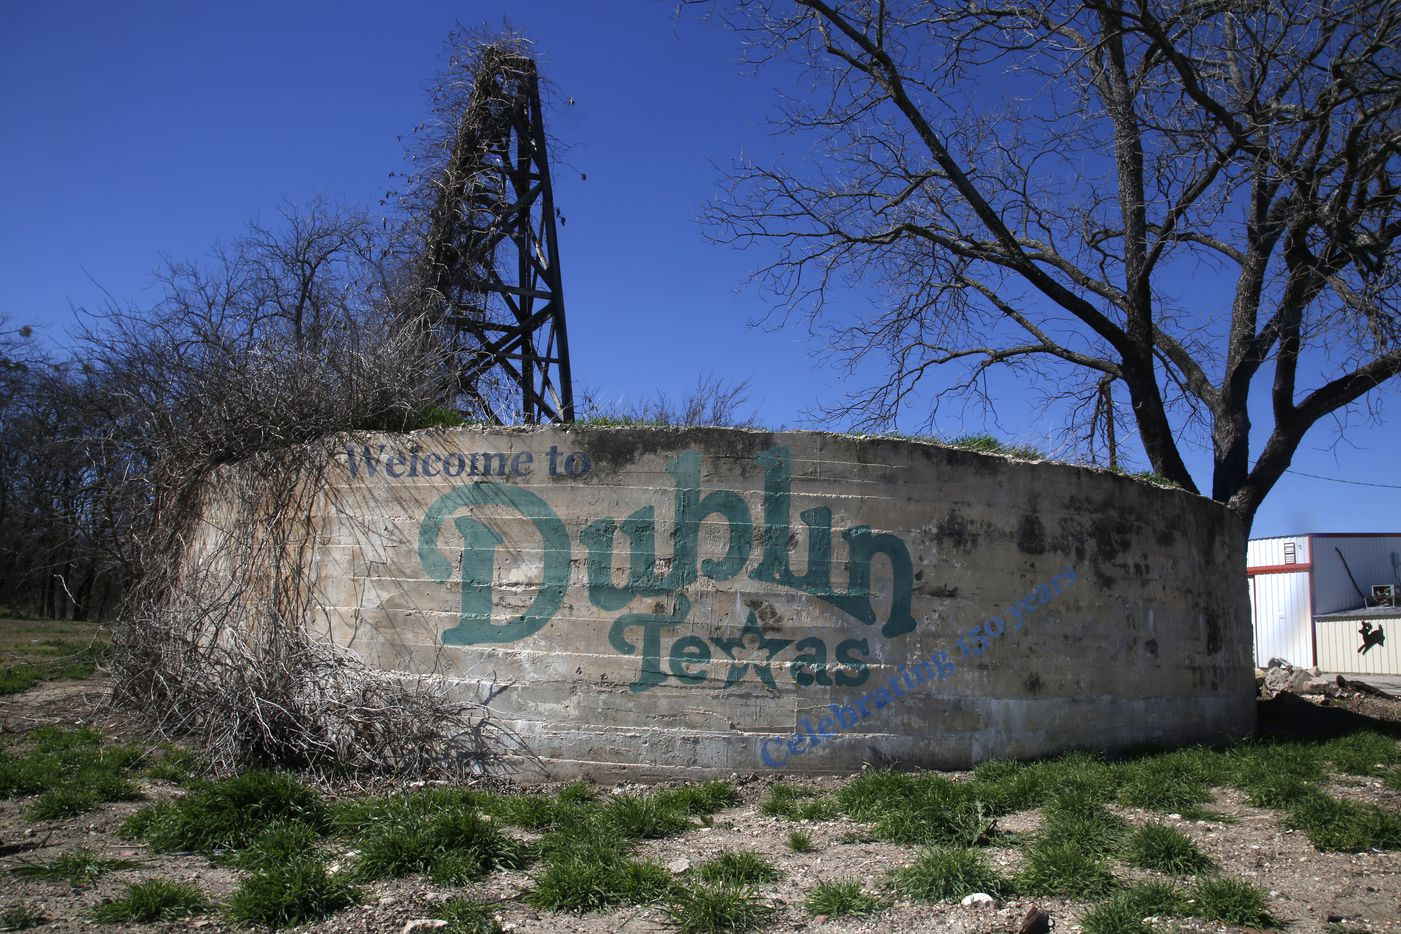 A Welcome To Dublin sign is seen not far from the Dublin Bottling Works in Dublin, Texas Friday Feb. 24, 2017. (Guy Reynolds/The Dallas Morning News)